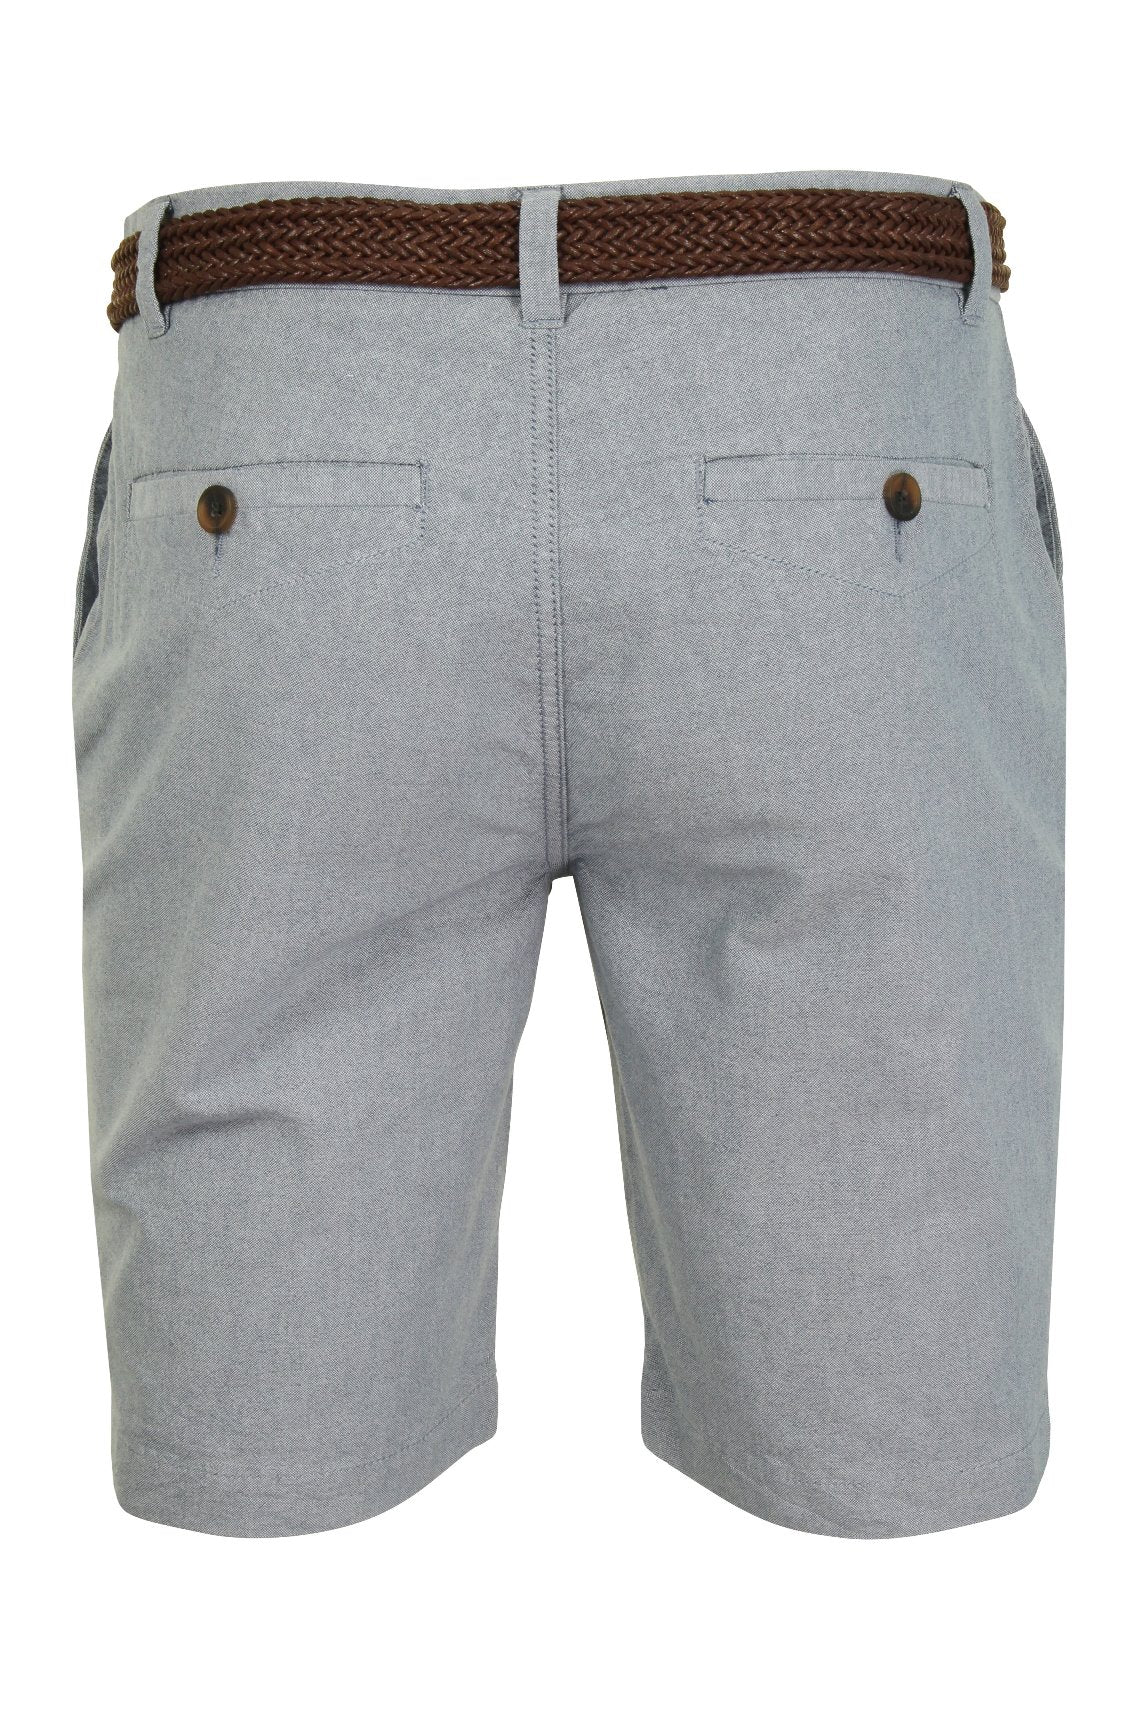 Mens Oxford Chino Shorts by Xact with Belt-3